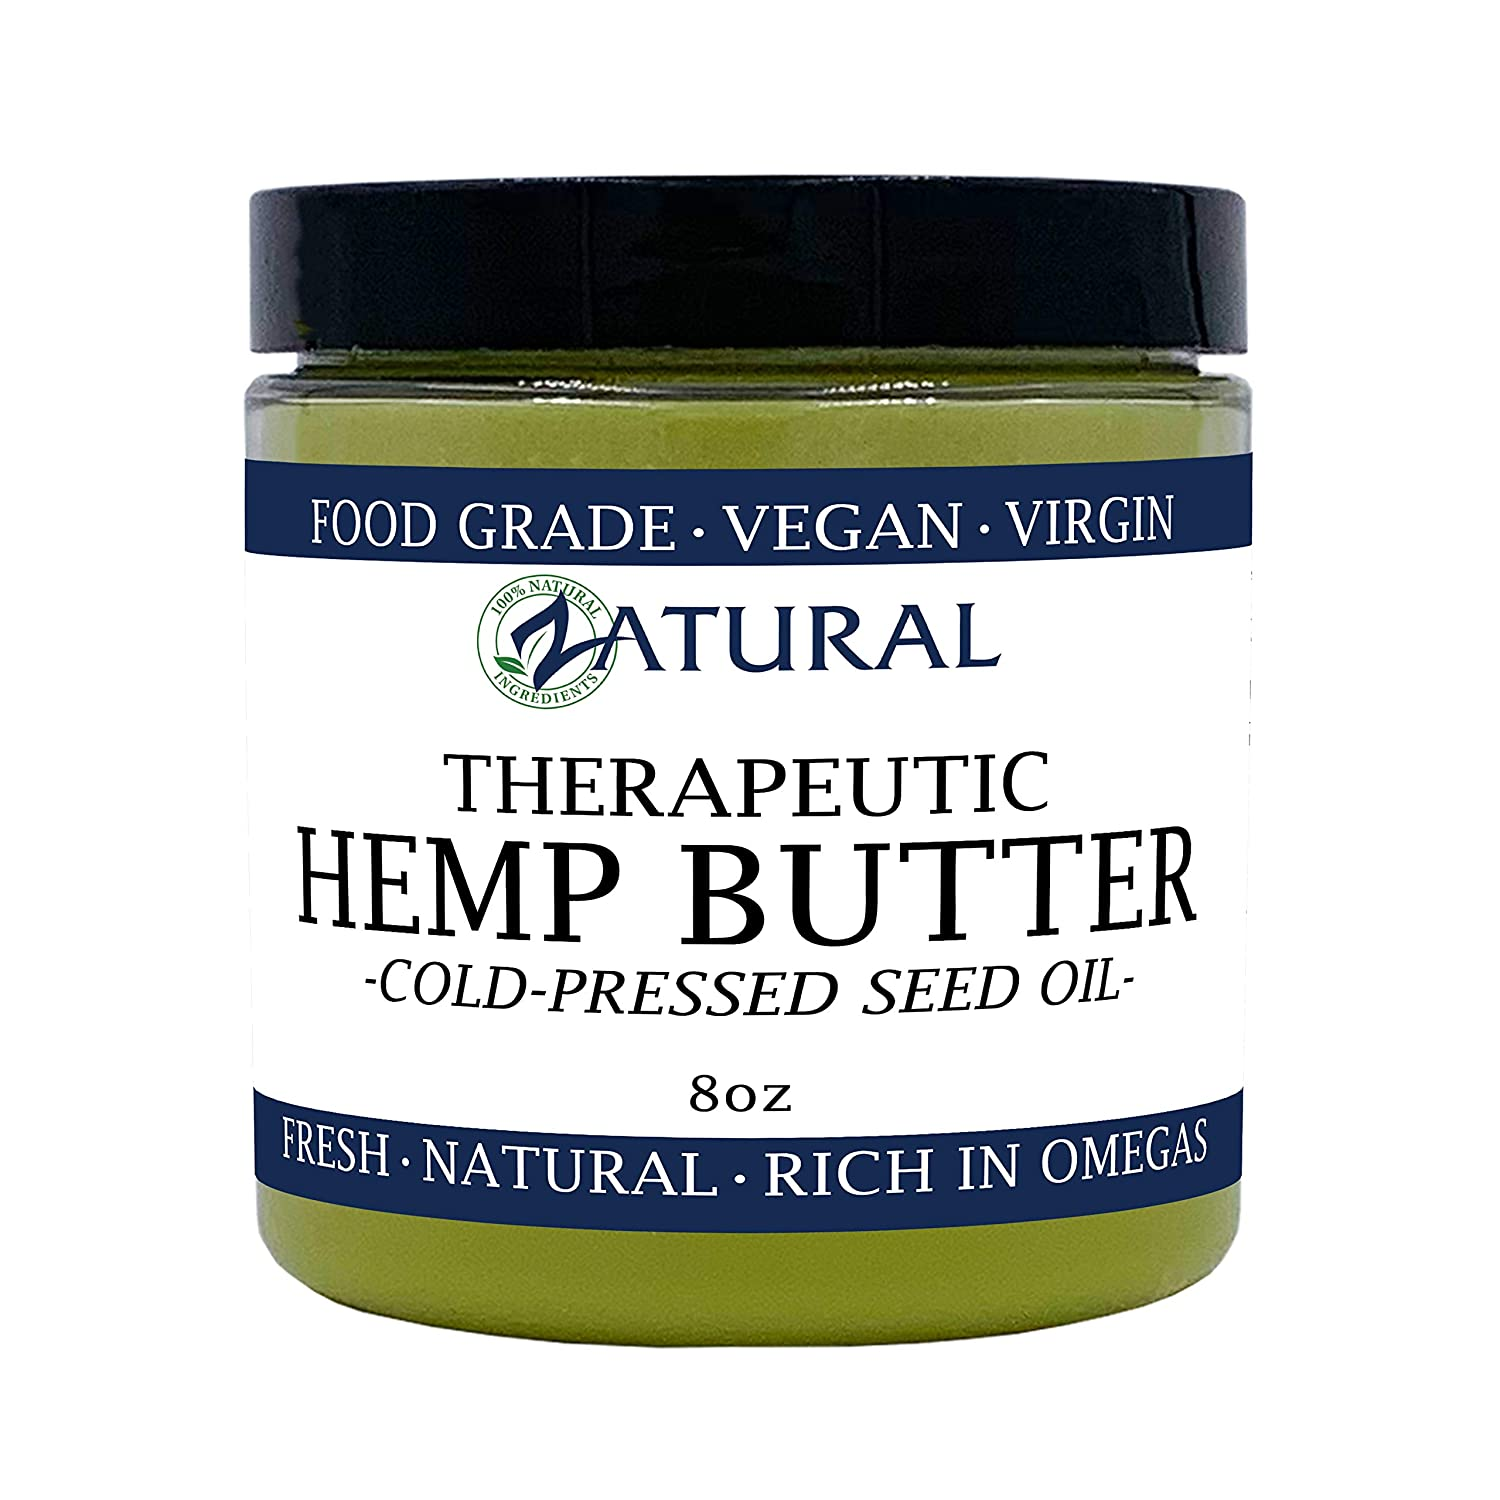 HEMP BUTTER | 100% All Natural Hemp Butter - Handcrafted - Assist with Pain, Stress, and more - Food Grade - vegan (8 Ounce)